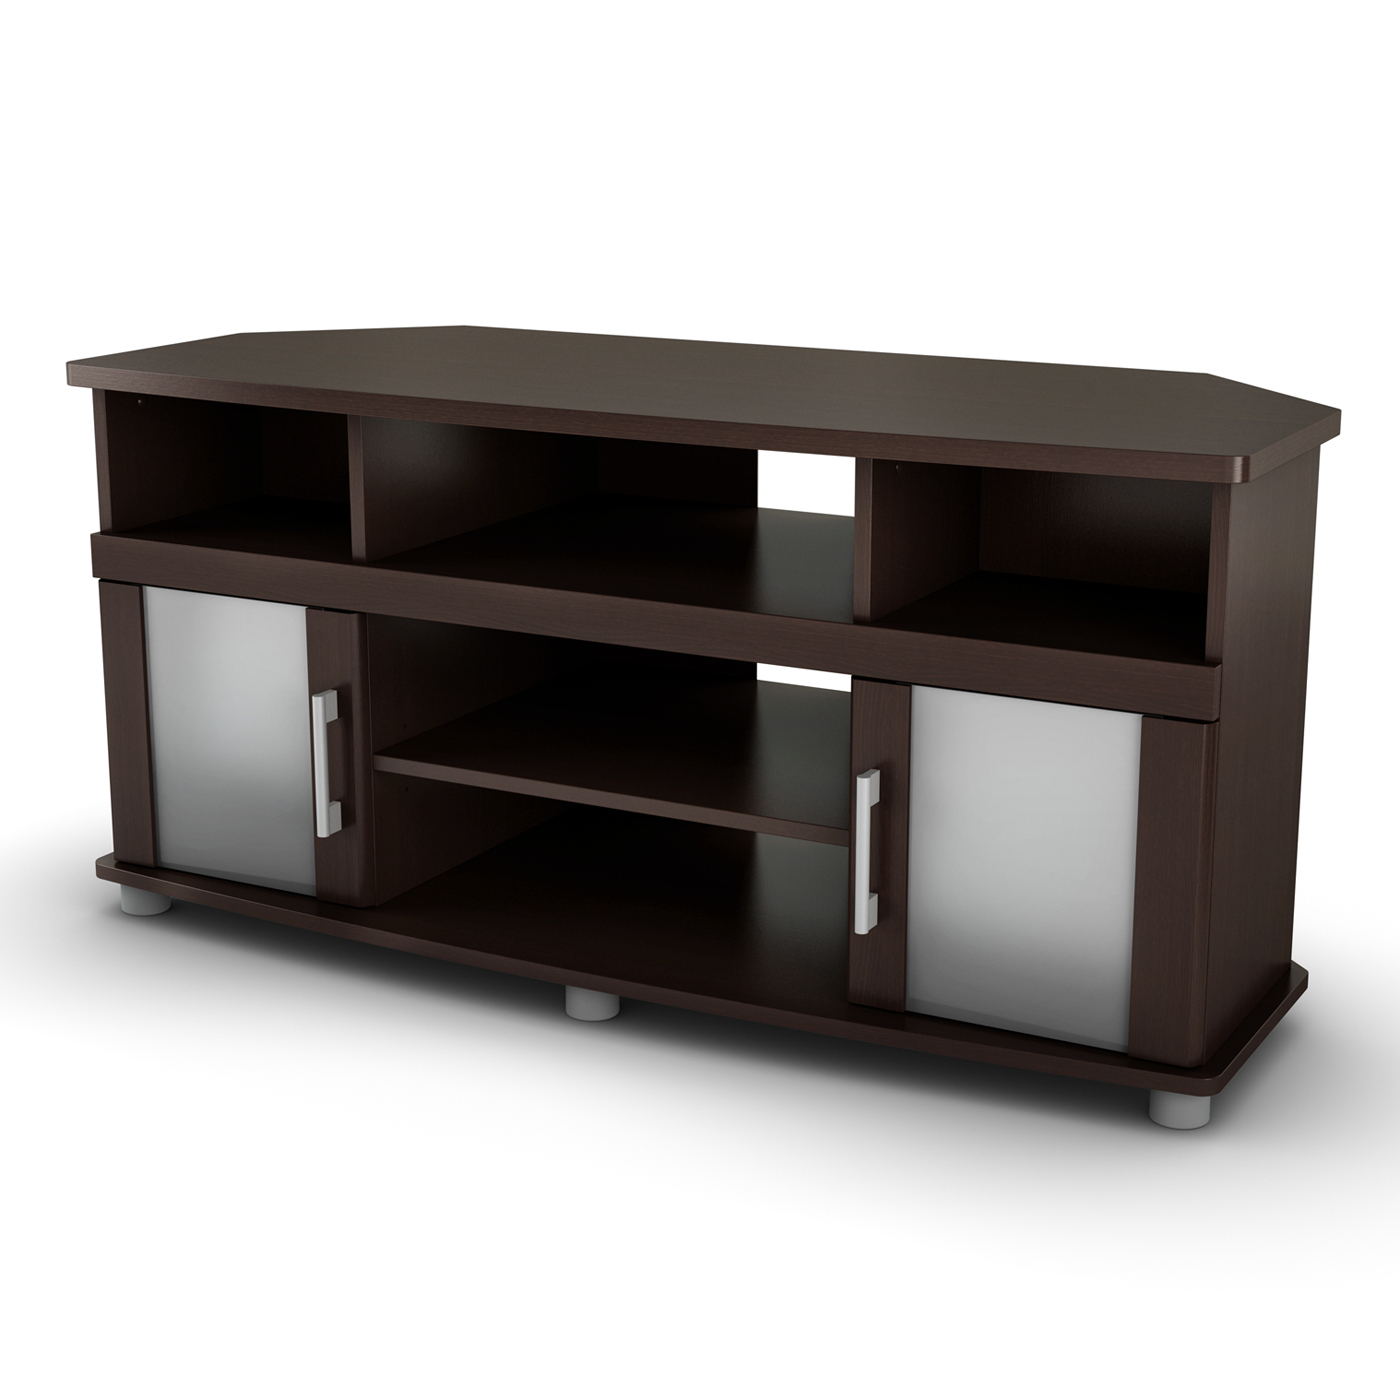 Modern Tv Stands | Lowe's Canada With Oxford 70 Inch Tv Stands (View 29 of 30)